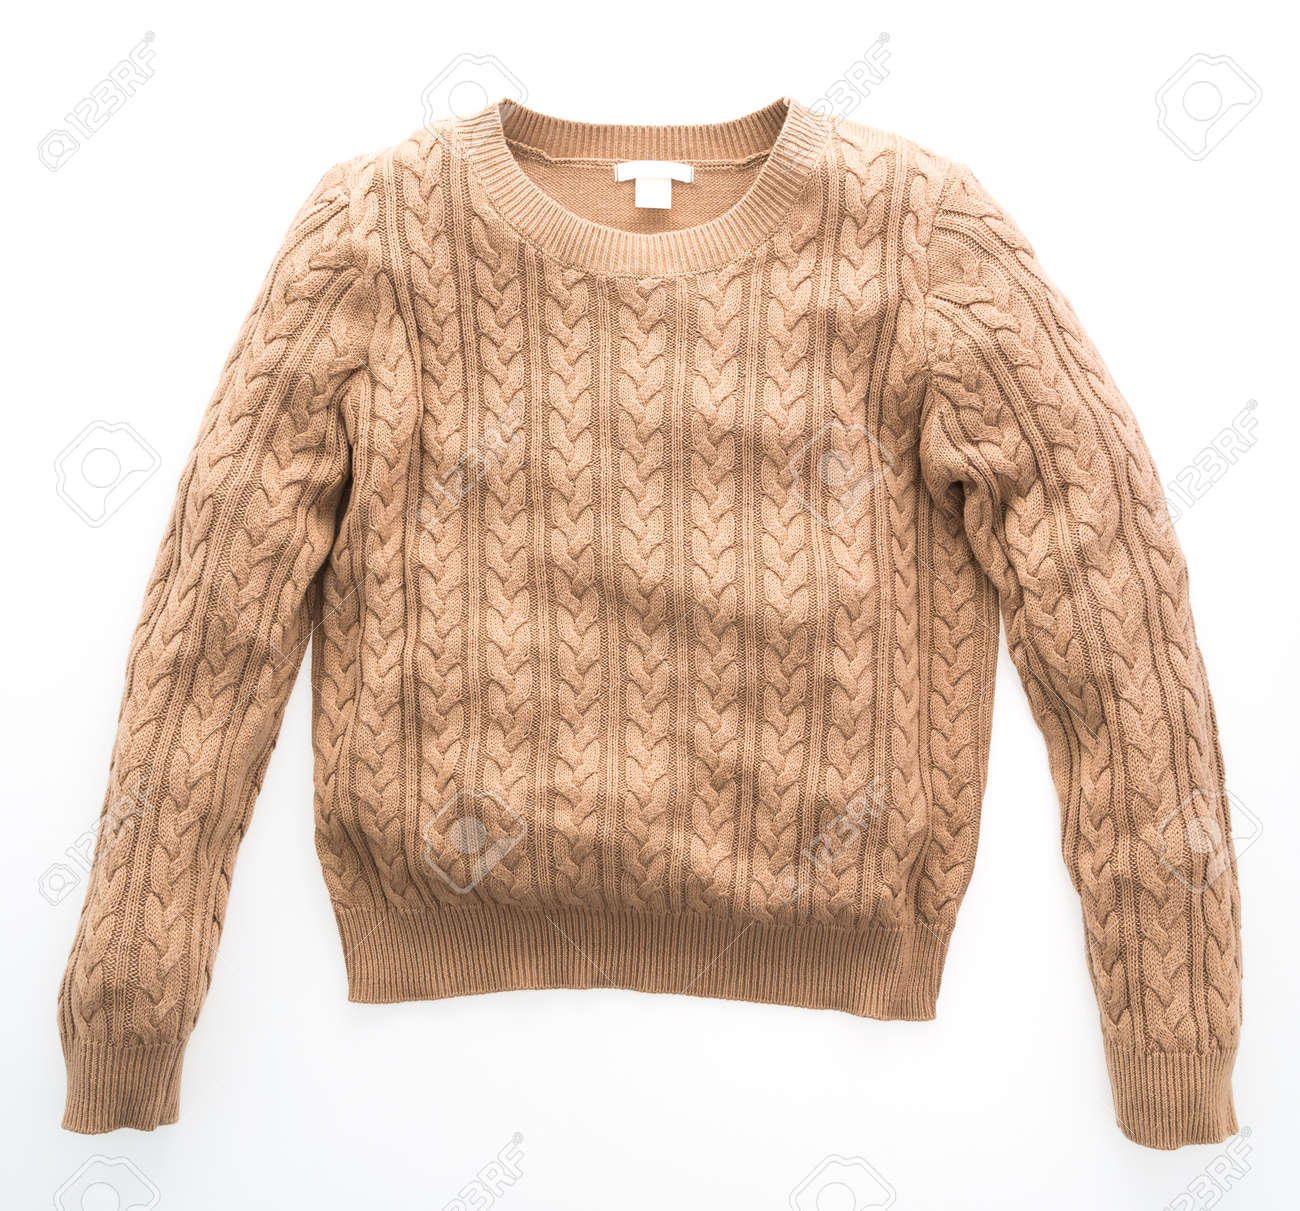 Fashion Sweaters clothing for winter season isolated on white..